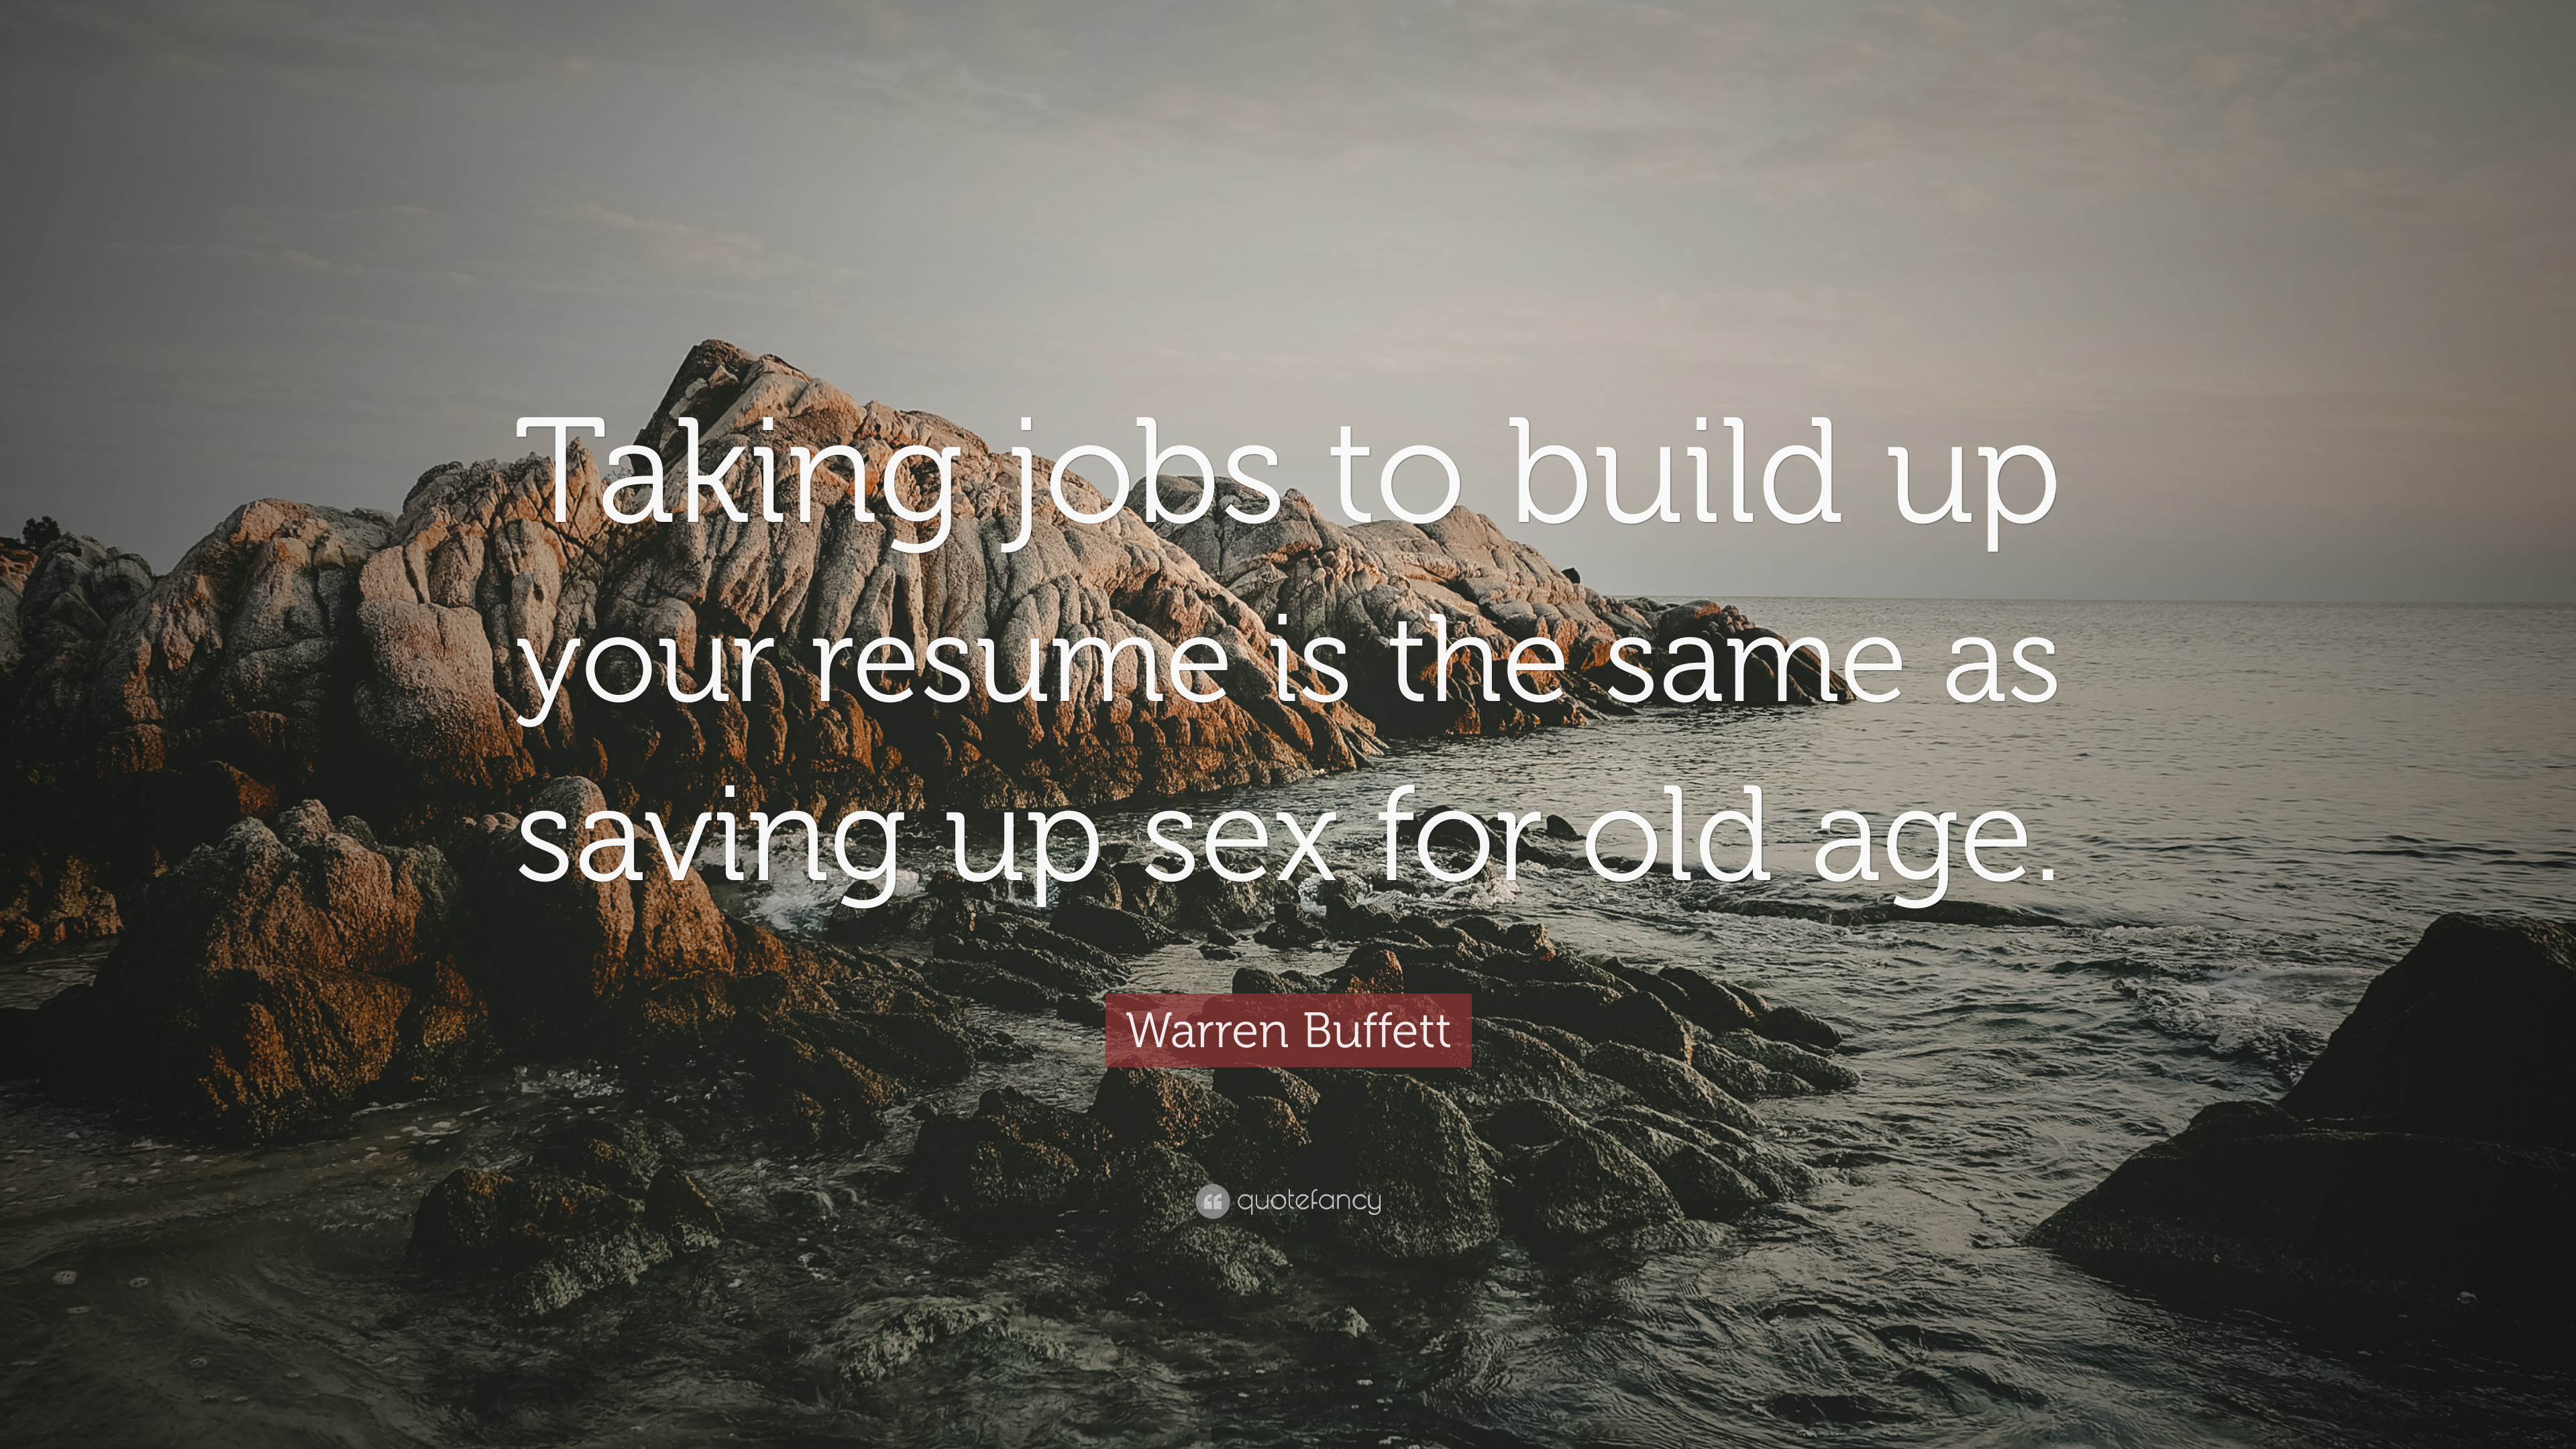 warren buffett quote taking jobs to build up your resume is the